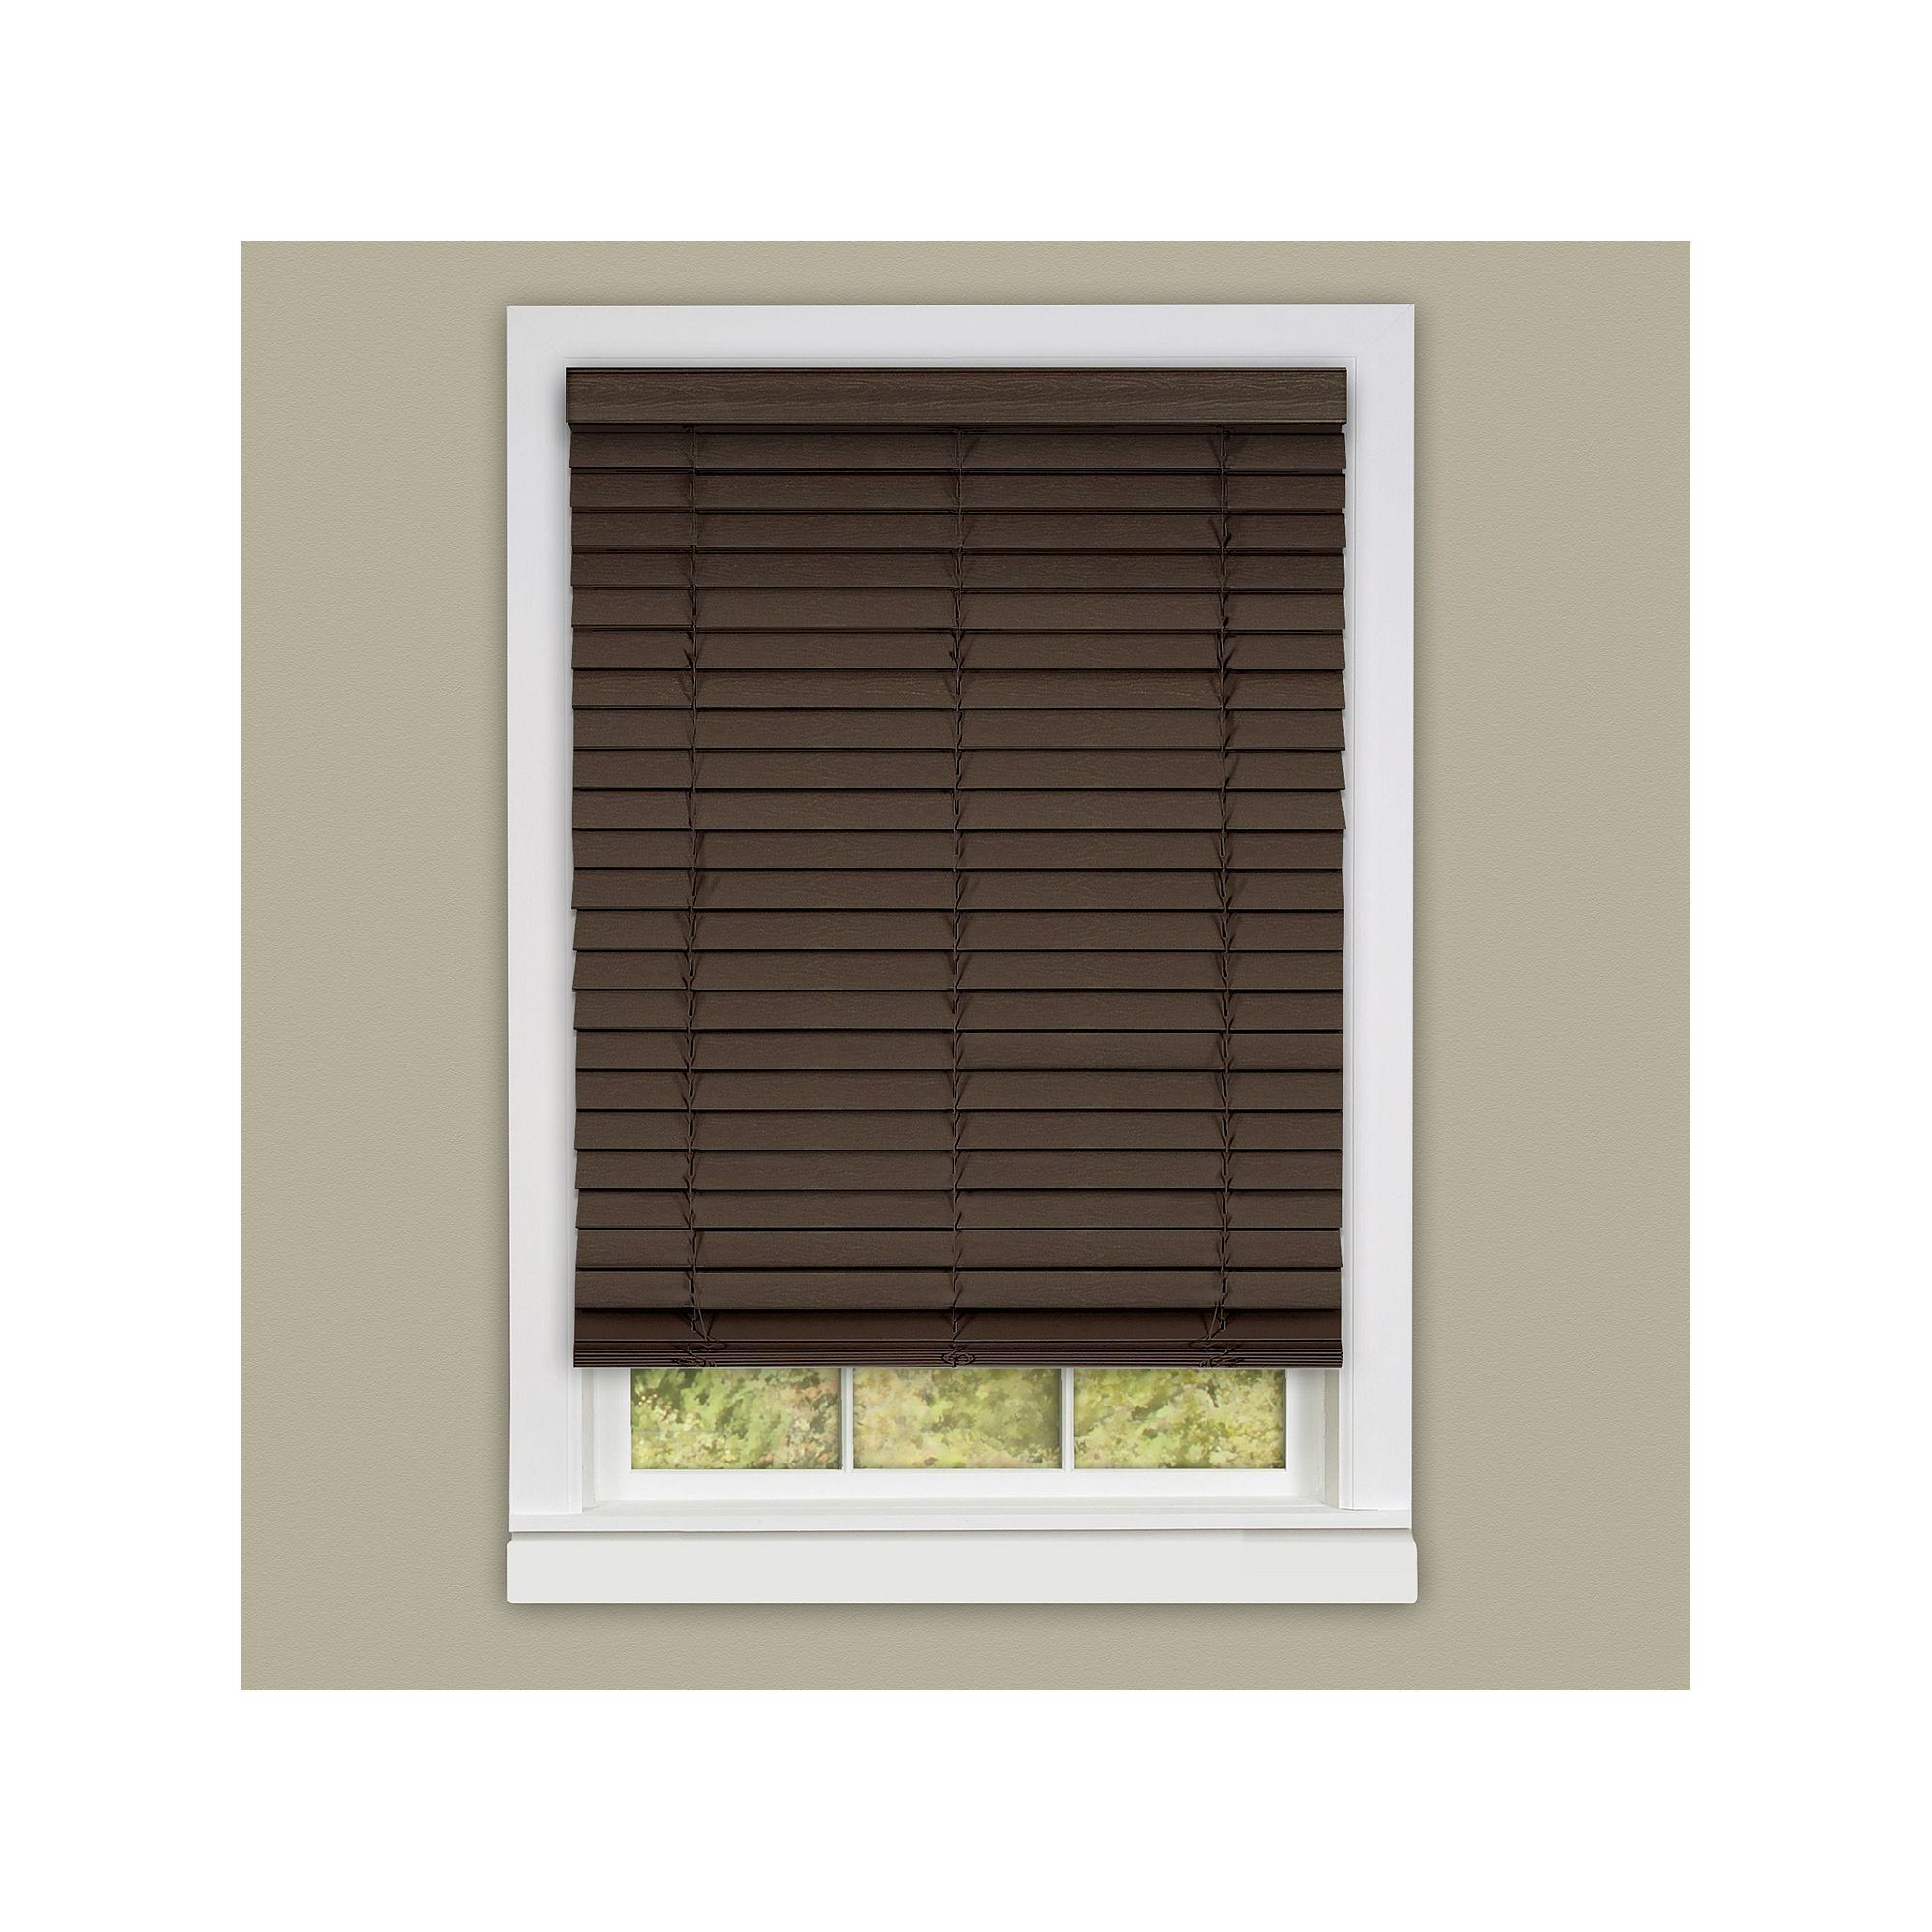 Window coverings types  madera falsa room darkening cordless uu fauxwood plantation blinds